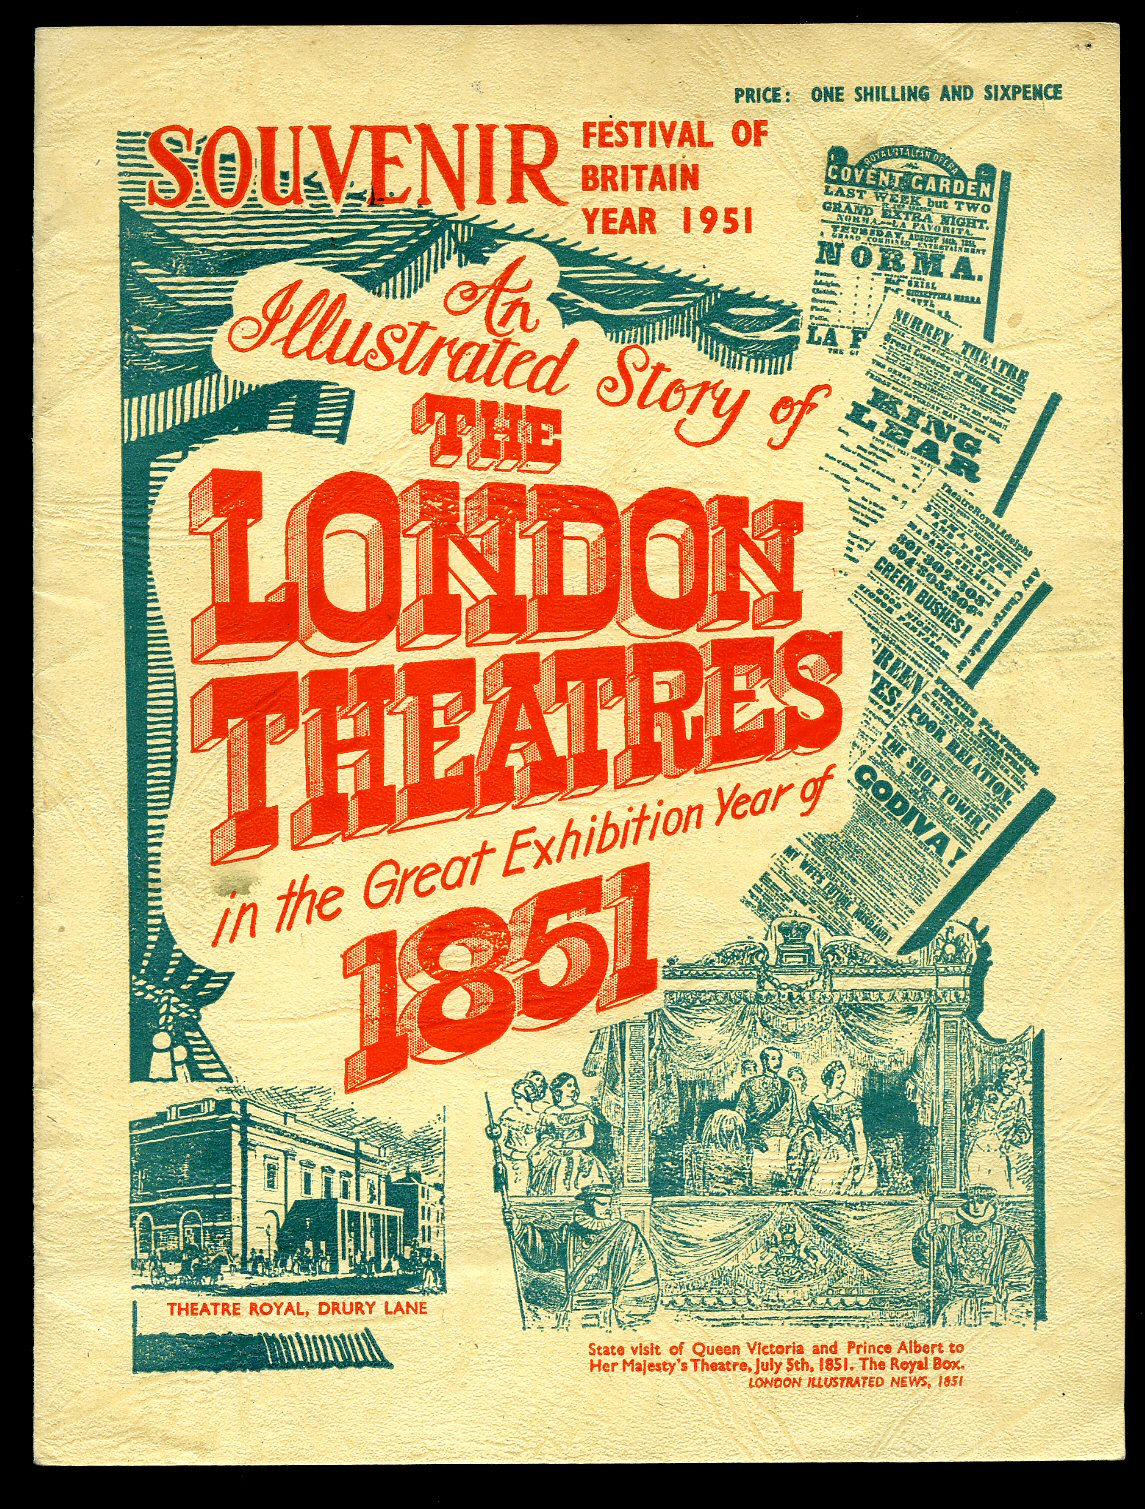 - Souvenir Festival of Britain Year 1951; An Illustrated Story of The London Theatres in the Great Exhibition Year of 1851